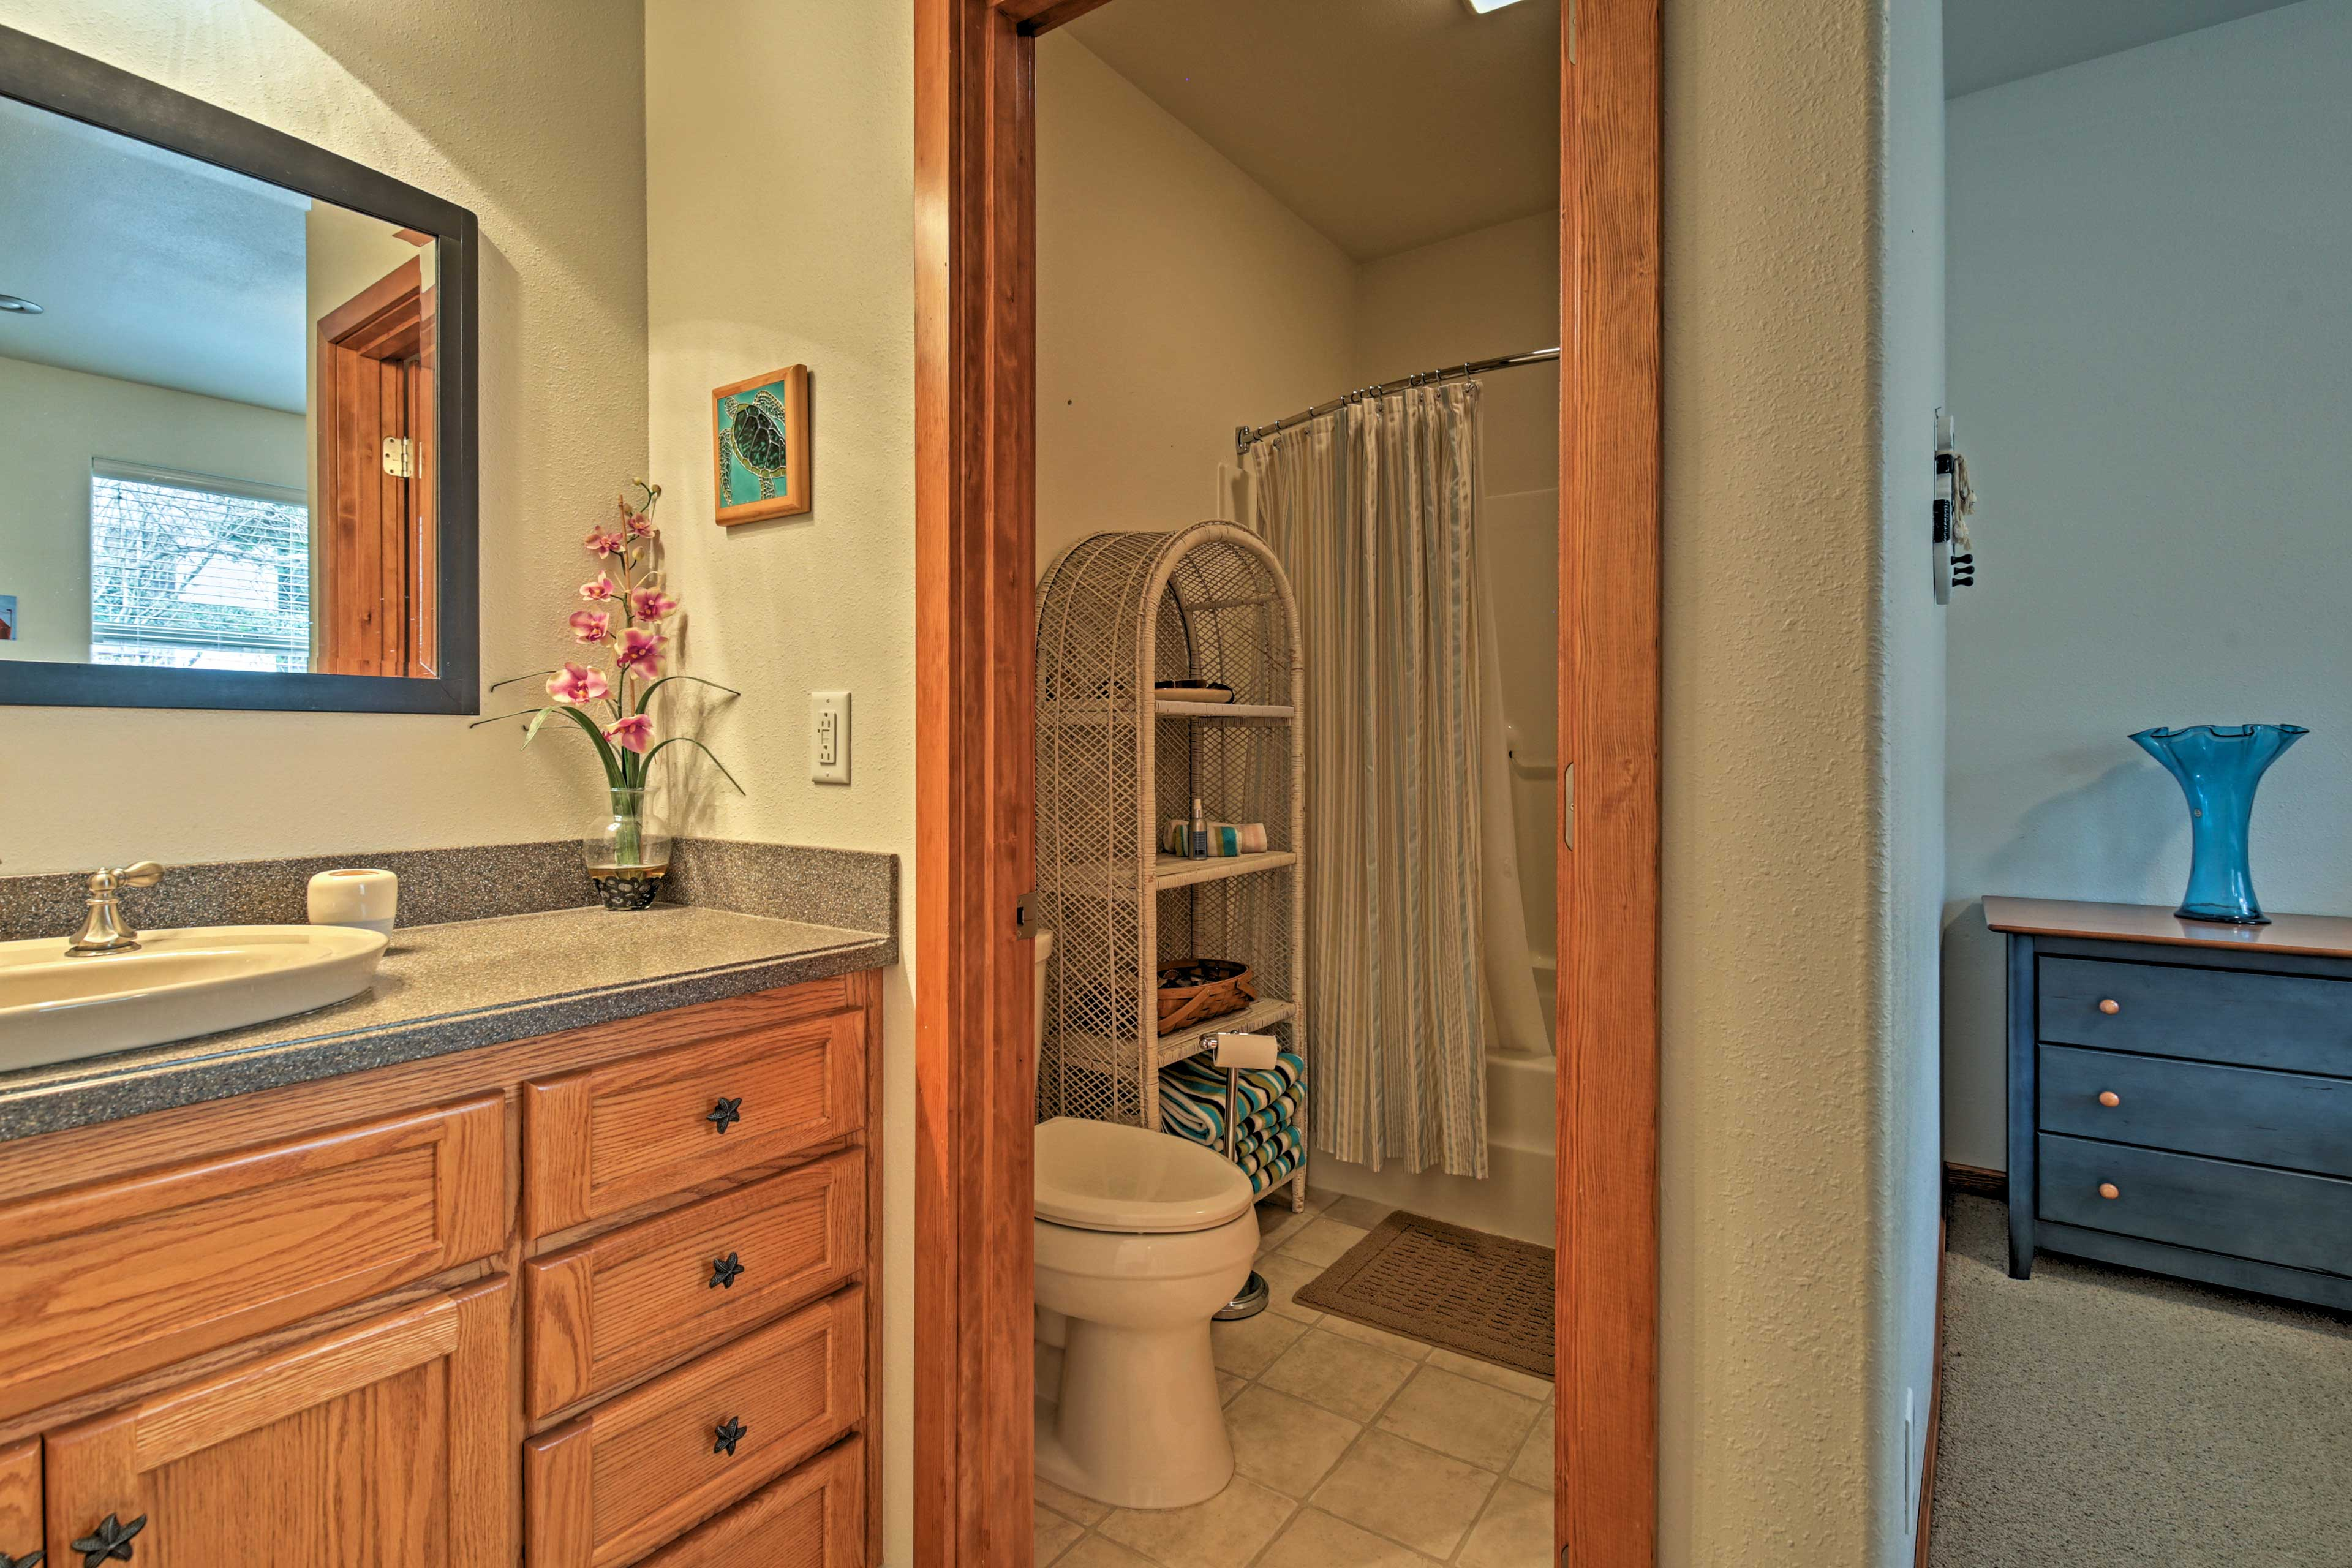 With 2 bathrooms in the home, no one will have to fight over the space.